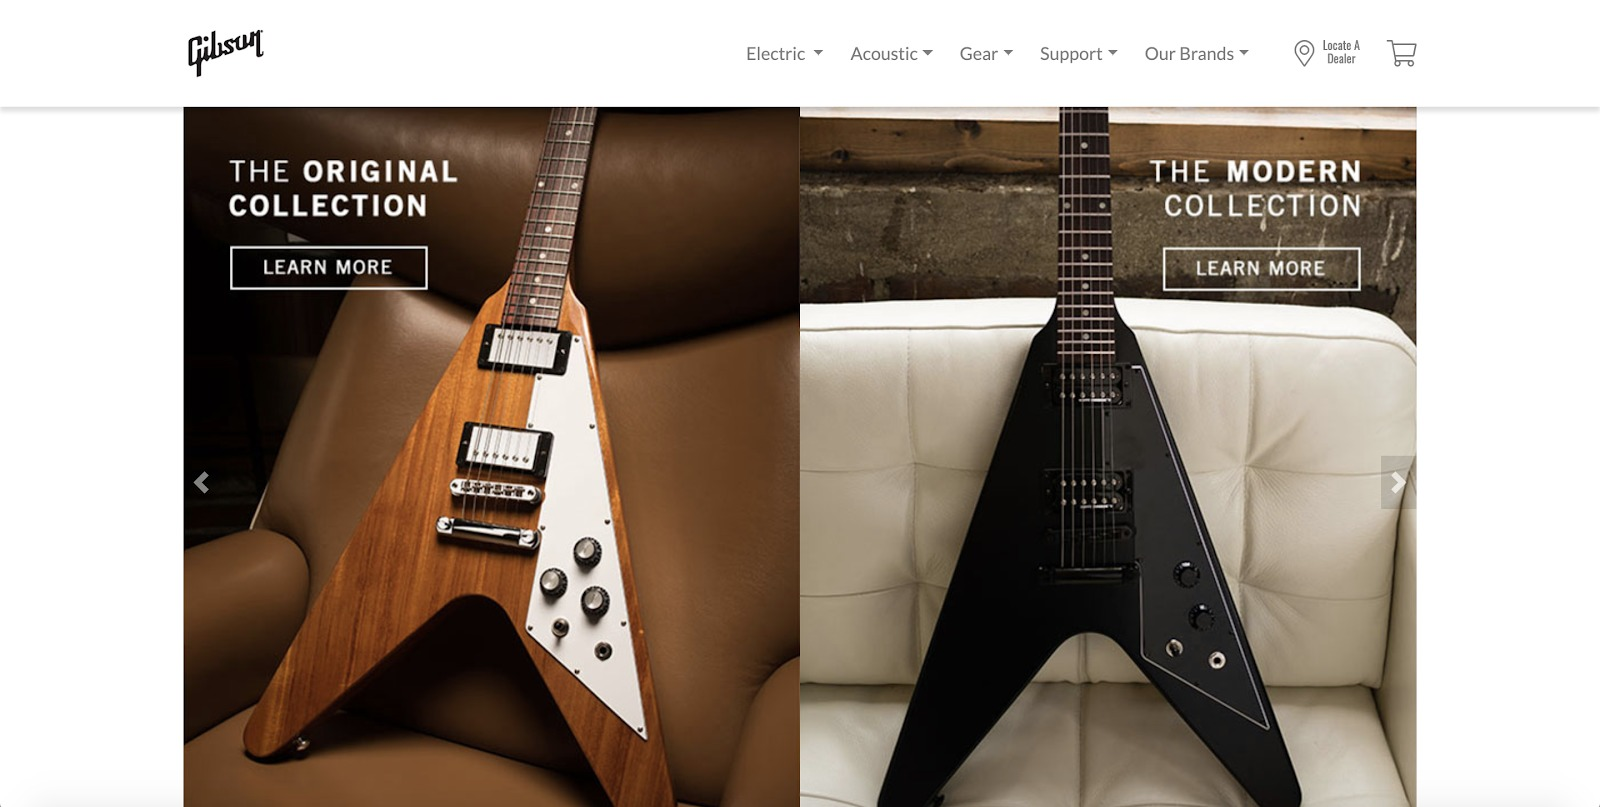 gibson store example